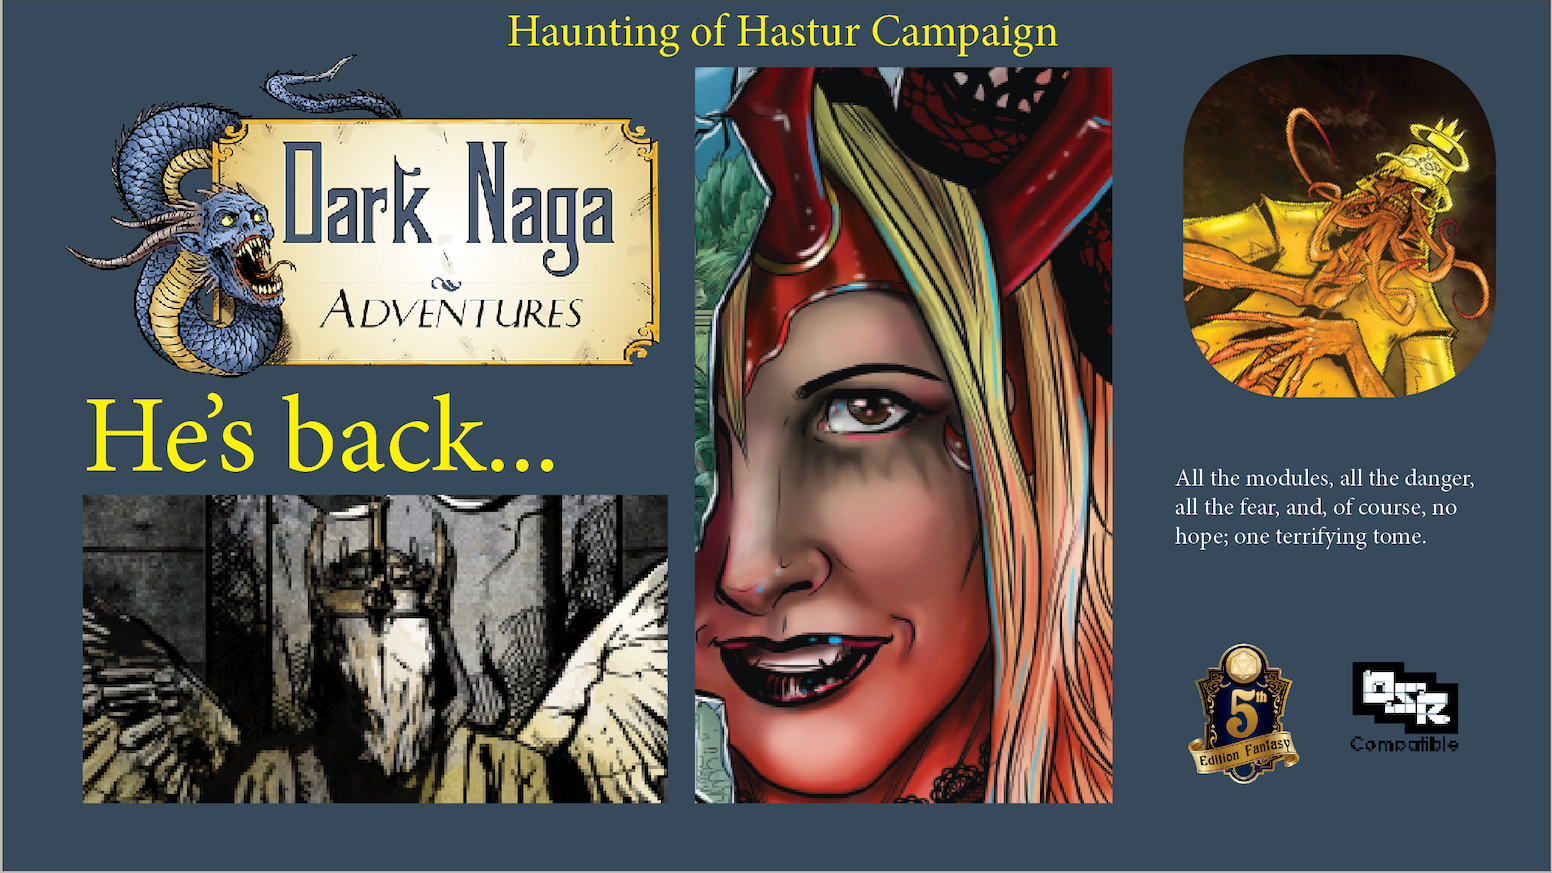 Hardback, color omnibus edition of the Haunting of Hastur modules. DNH1, DNH2, DNH3, DNH4, and DNH5 with VTT Maps and extras